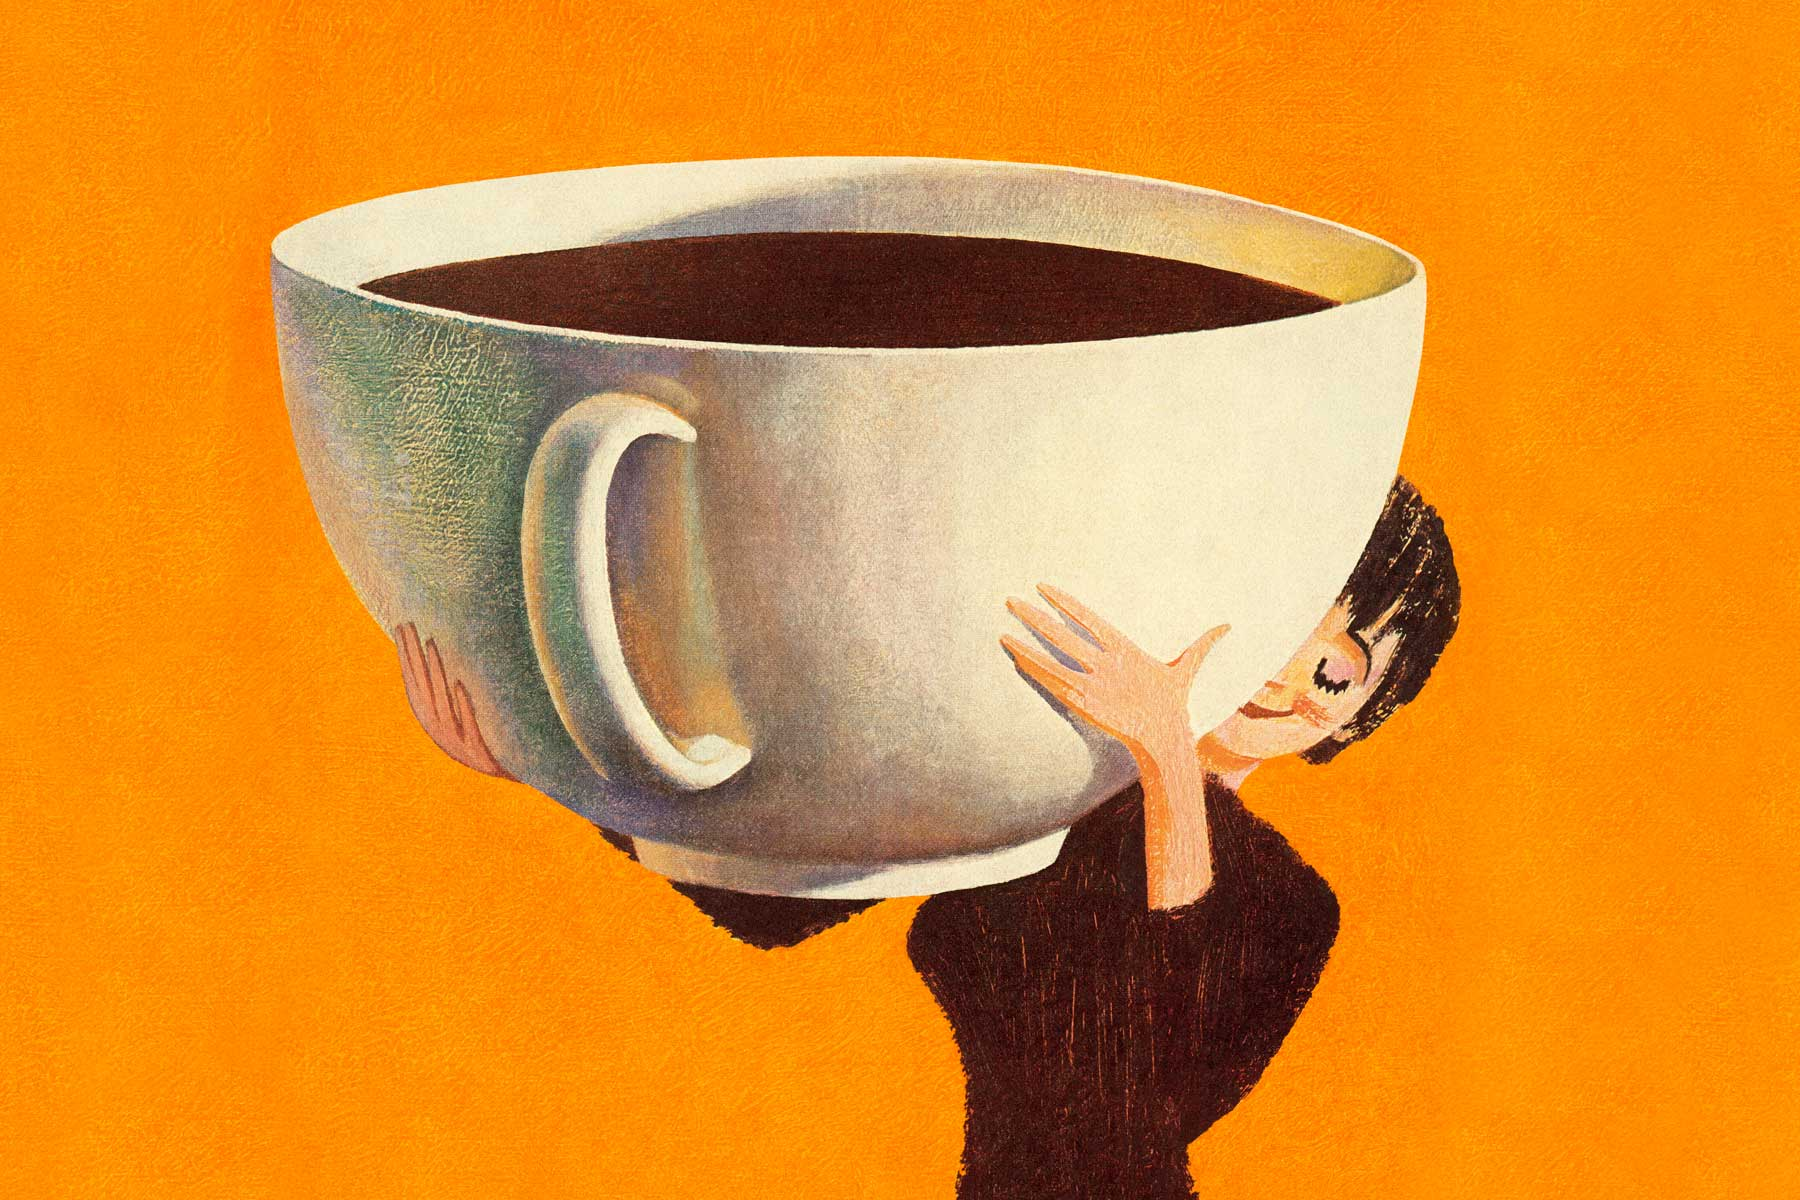 Illustration of woman holding giant cup of coffee